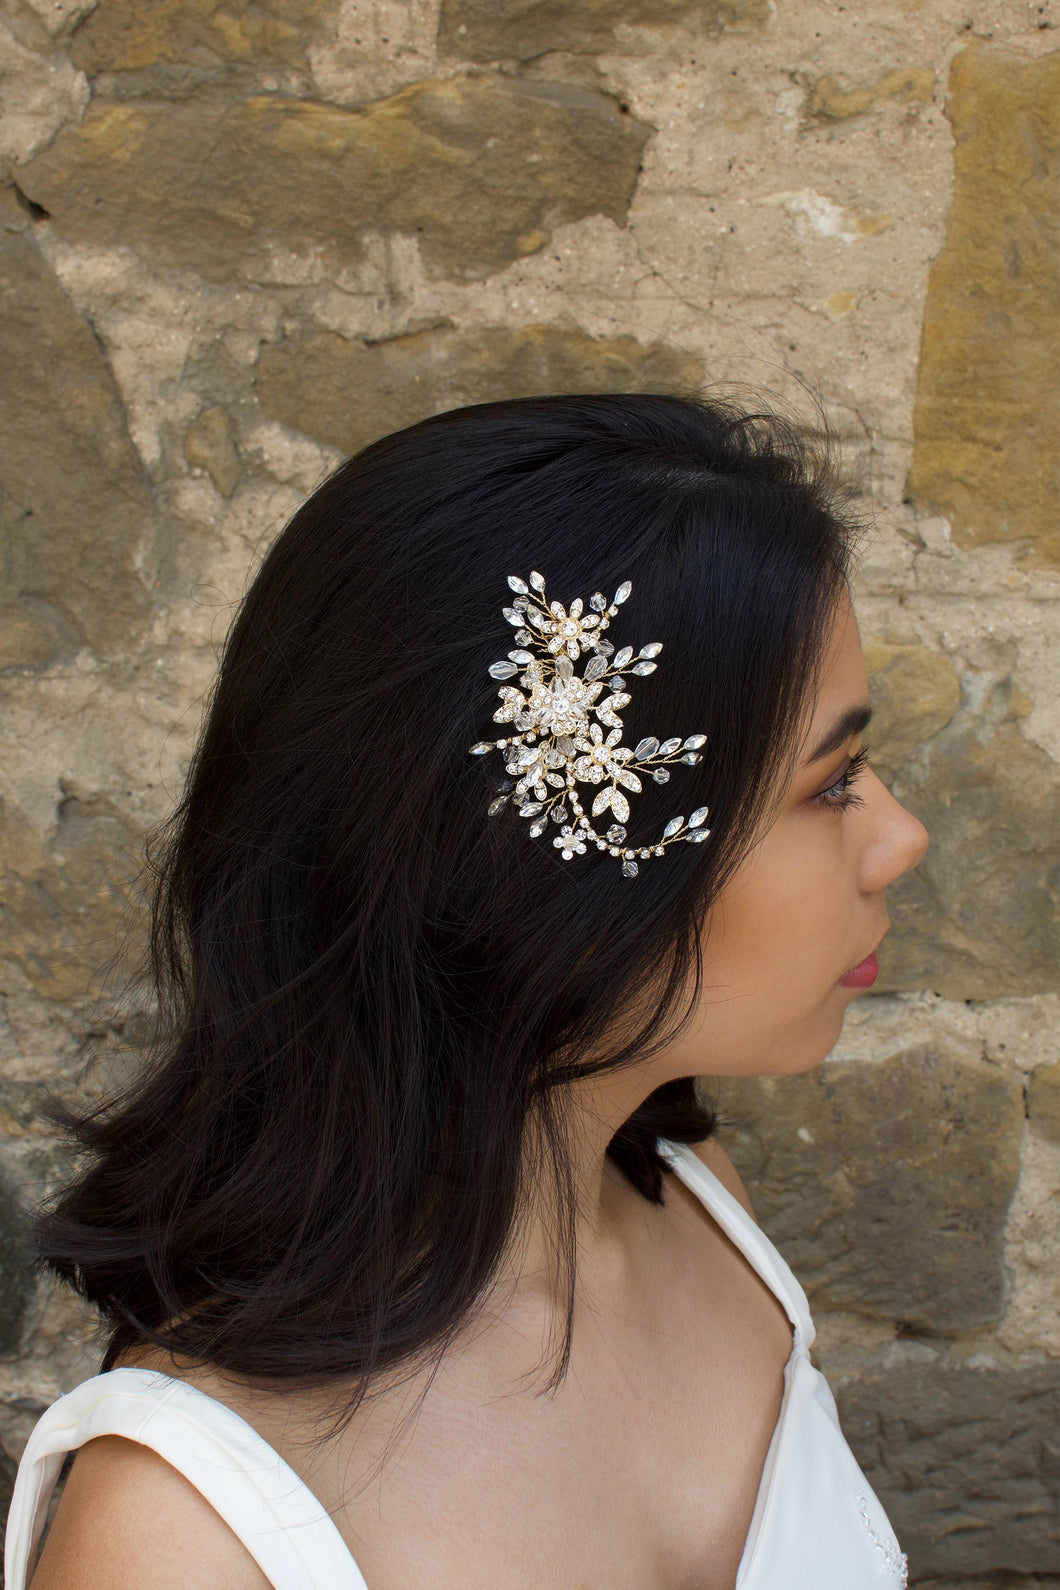 Gold Leaves and Crystals side comb worn by a dark haired model with a stone wall background